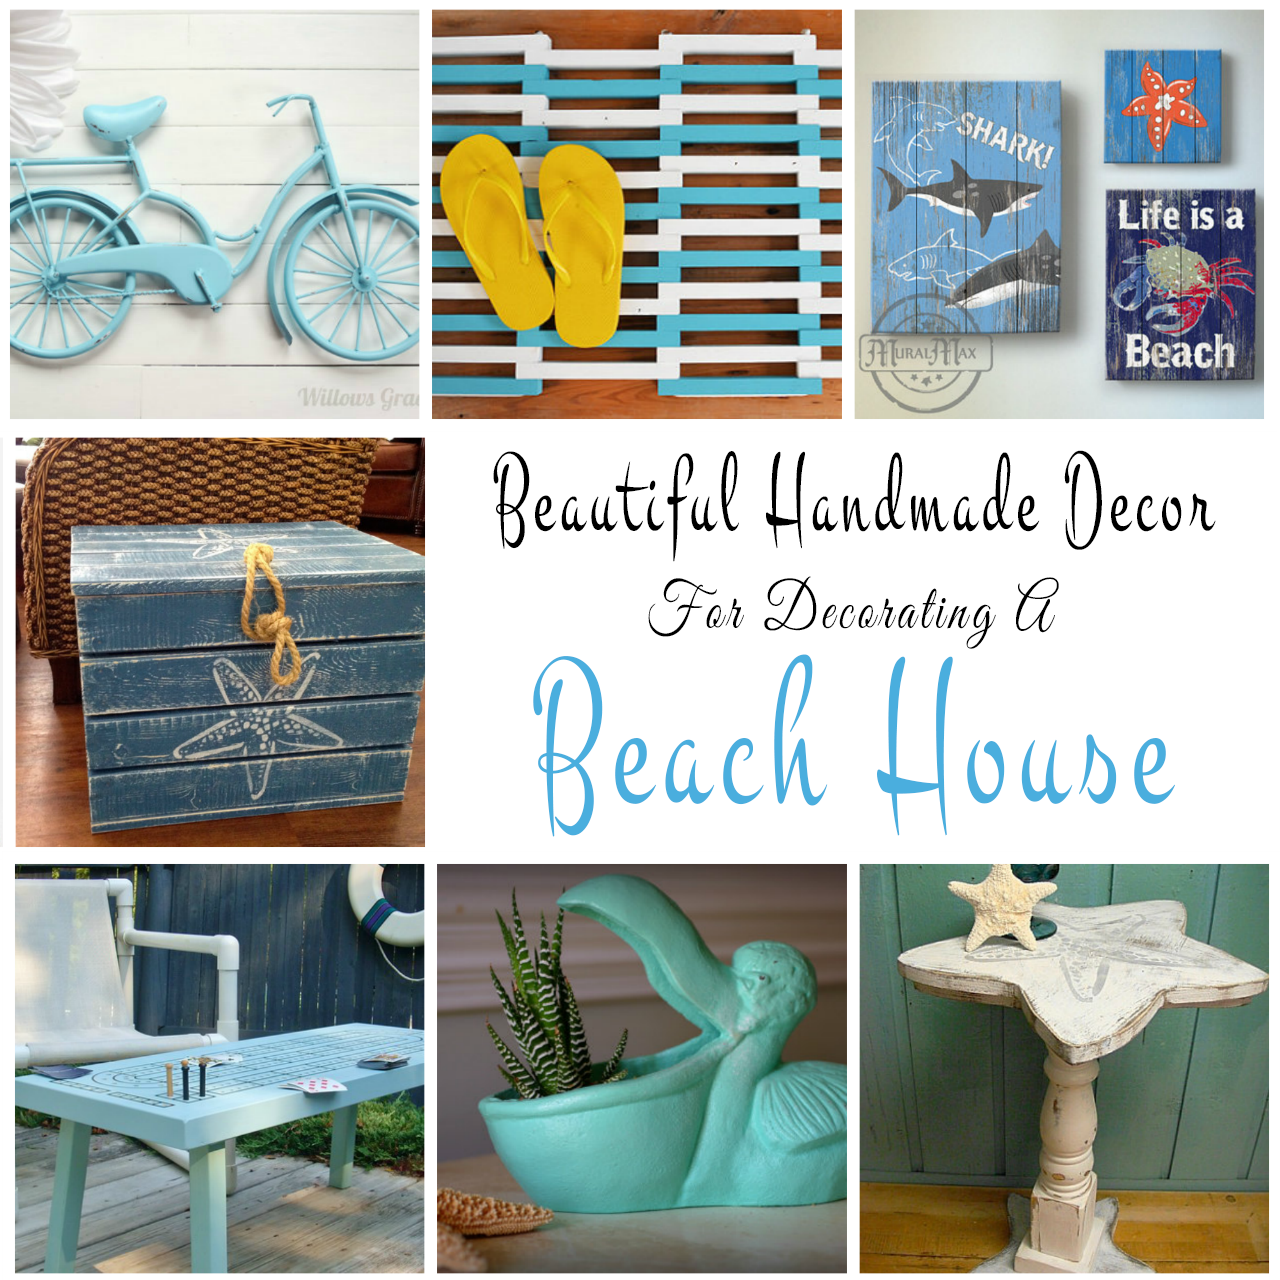 Handmade decor ideas for decorating a beach house for How to decorate a beach house